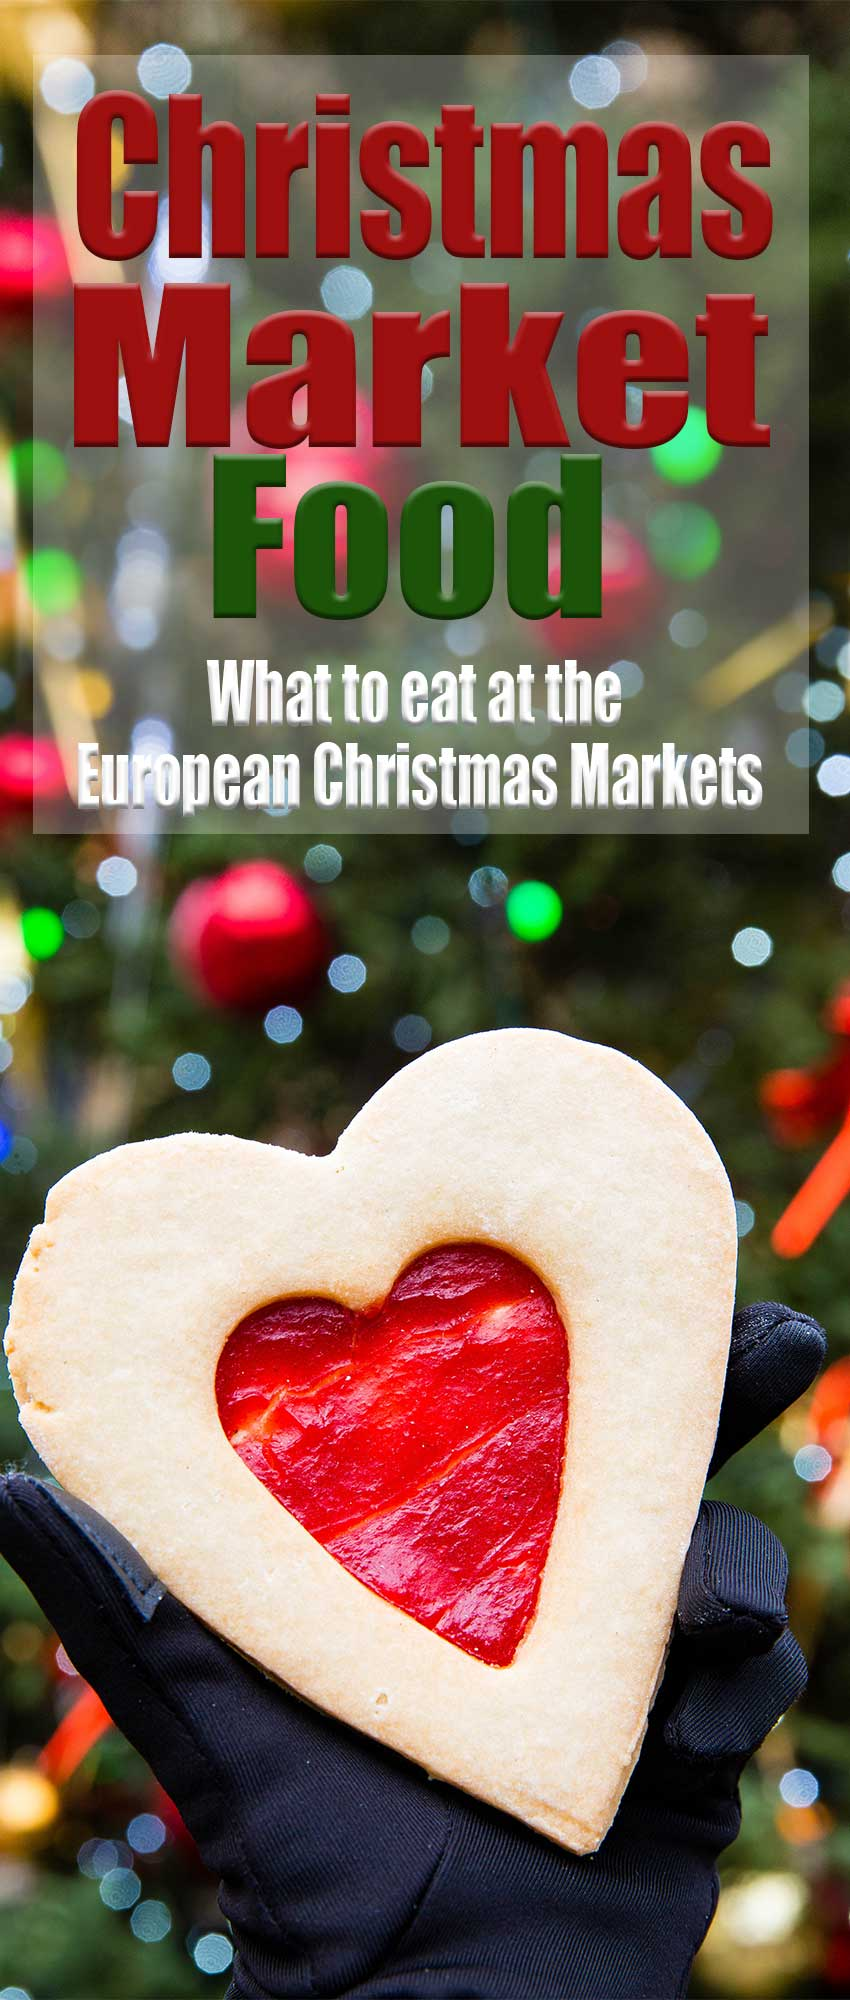 What to eat at the European Christmas Markets